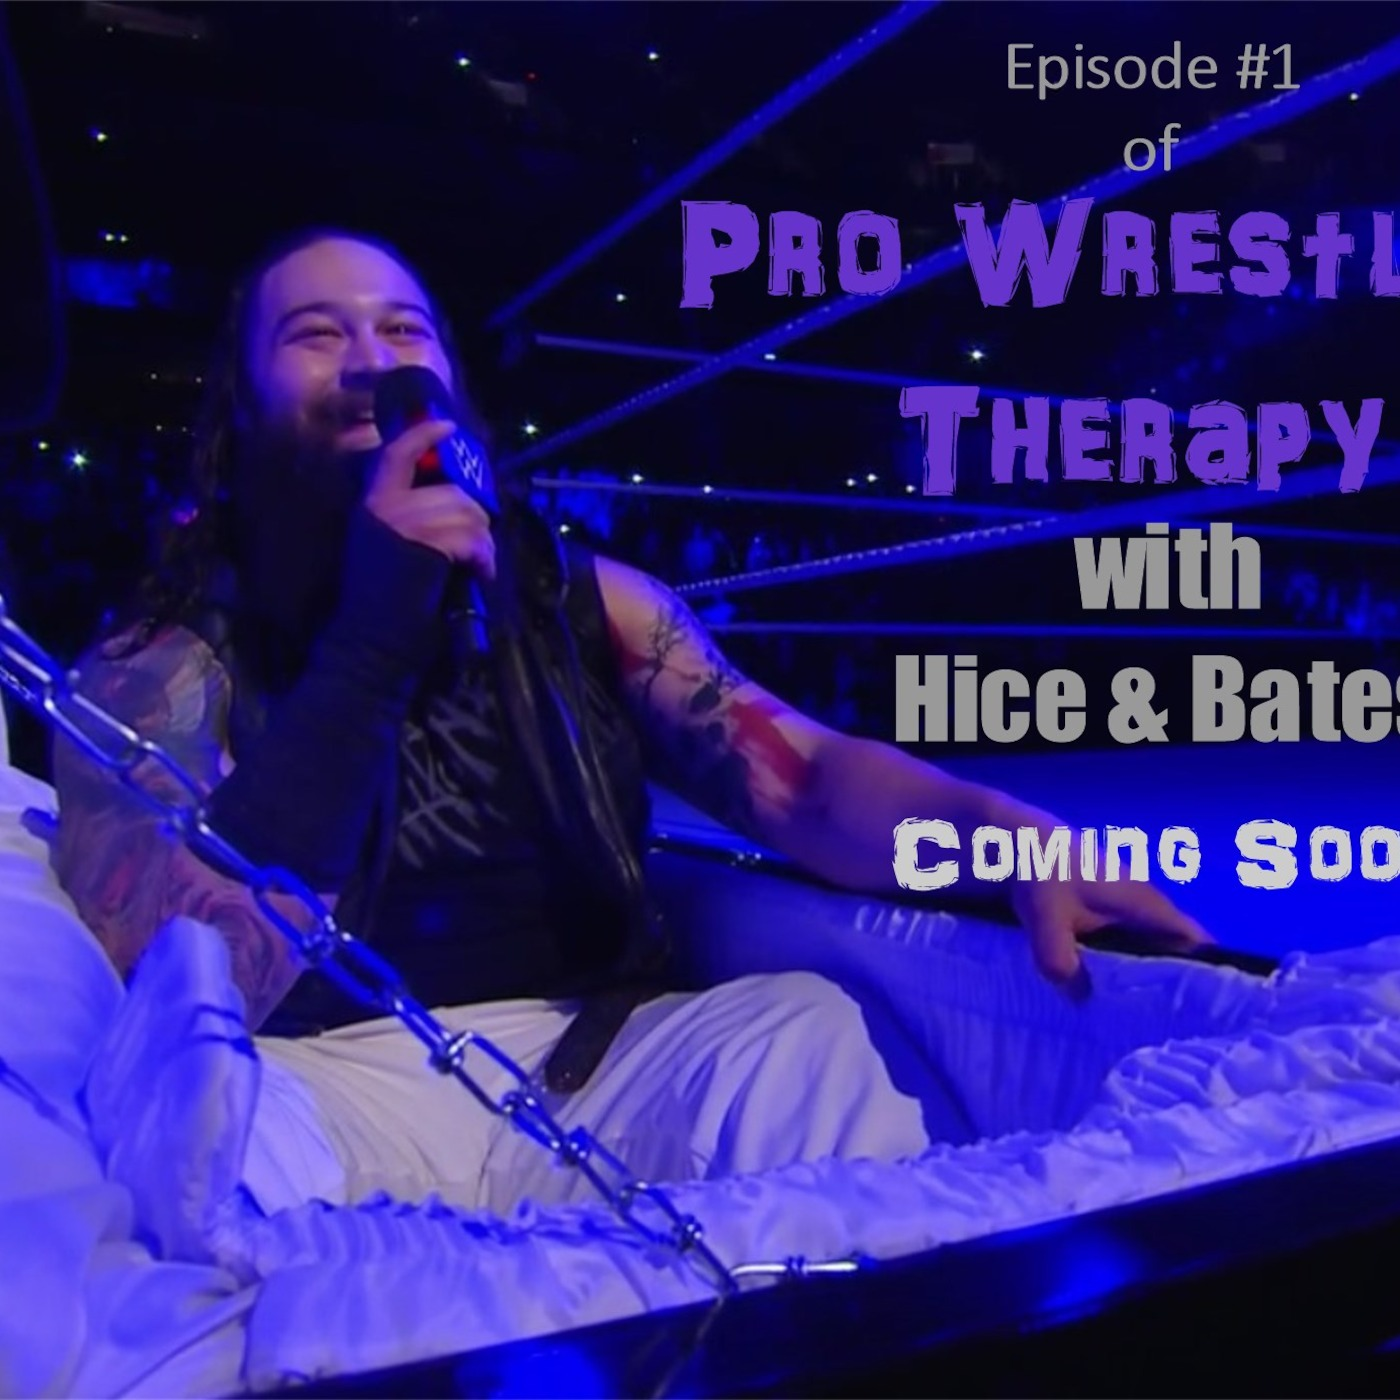 Pro Wrestling Therapy Podcast's Podcast